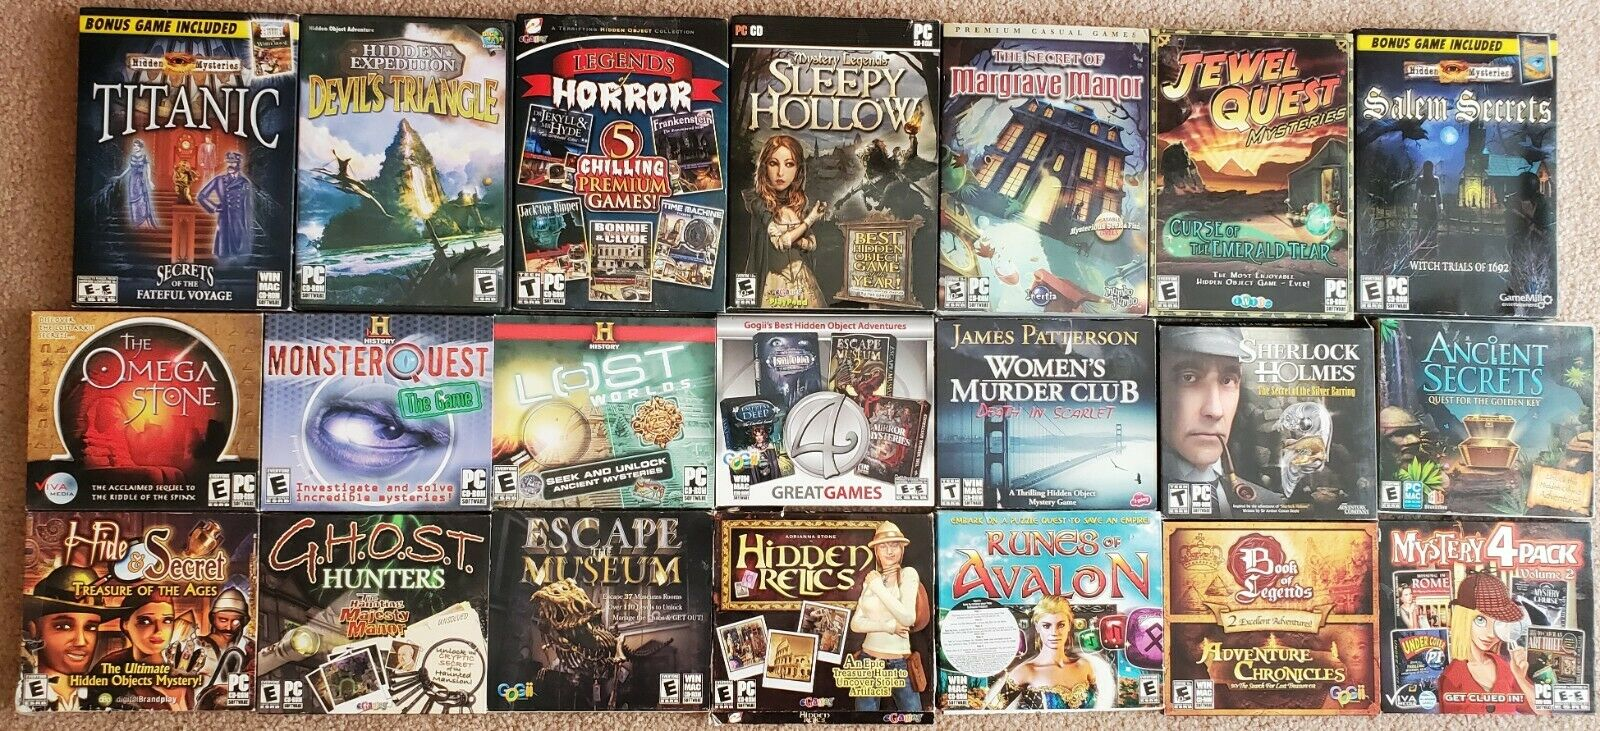 Computer Games -  Lot of 21 PC Computer Games Adventures / Hidden Objects / Mysteries etc